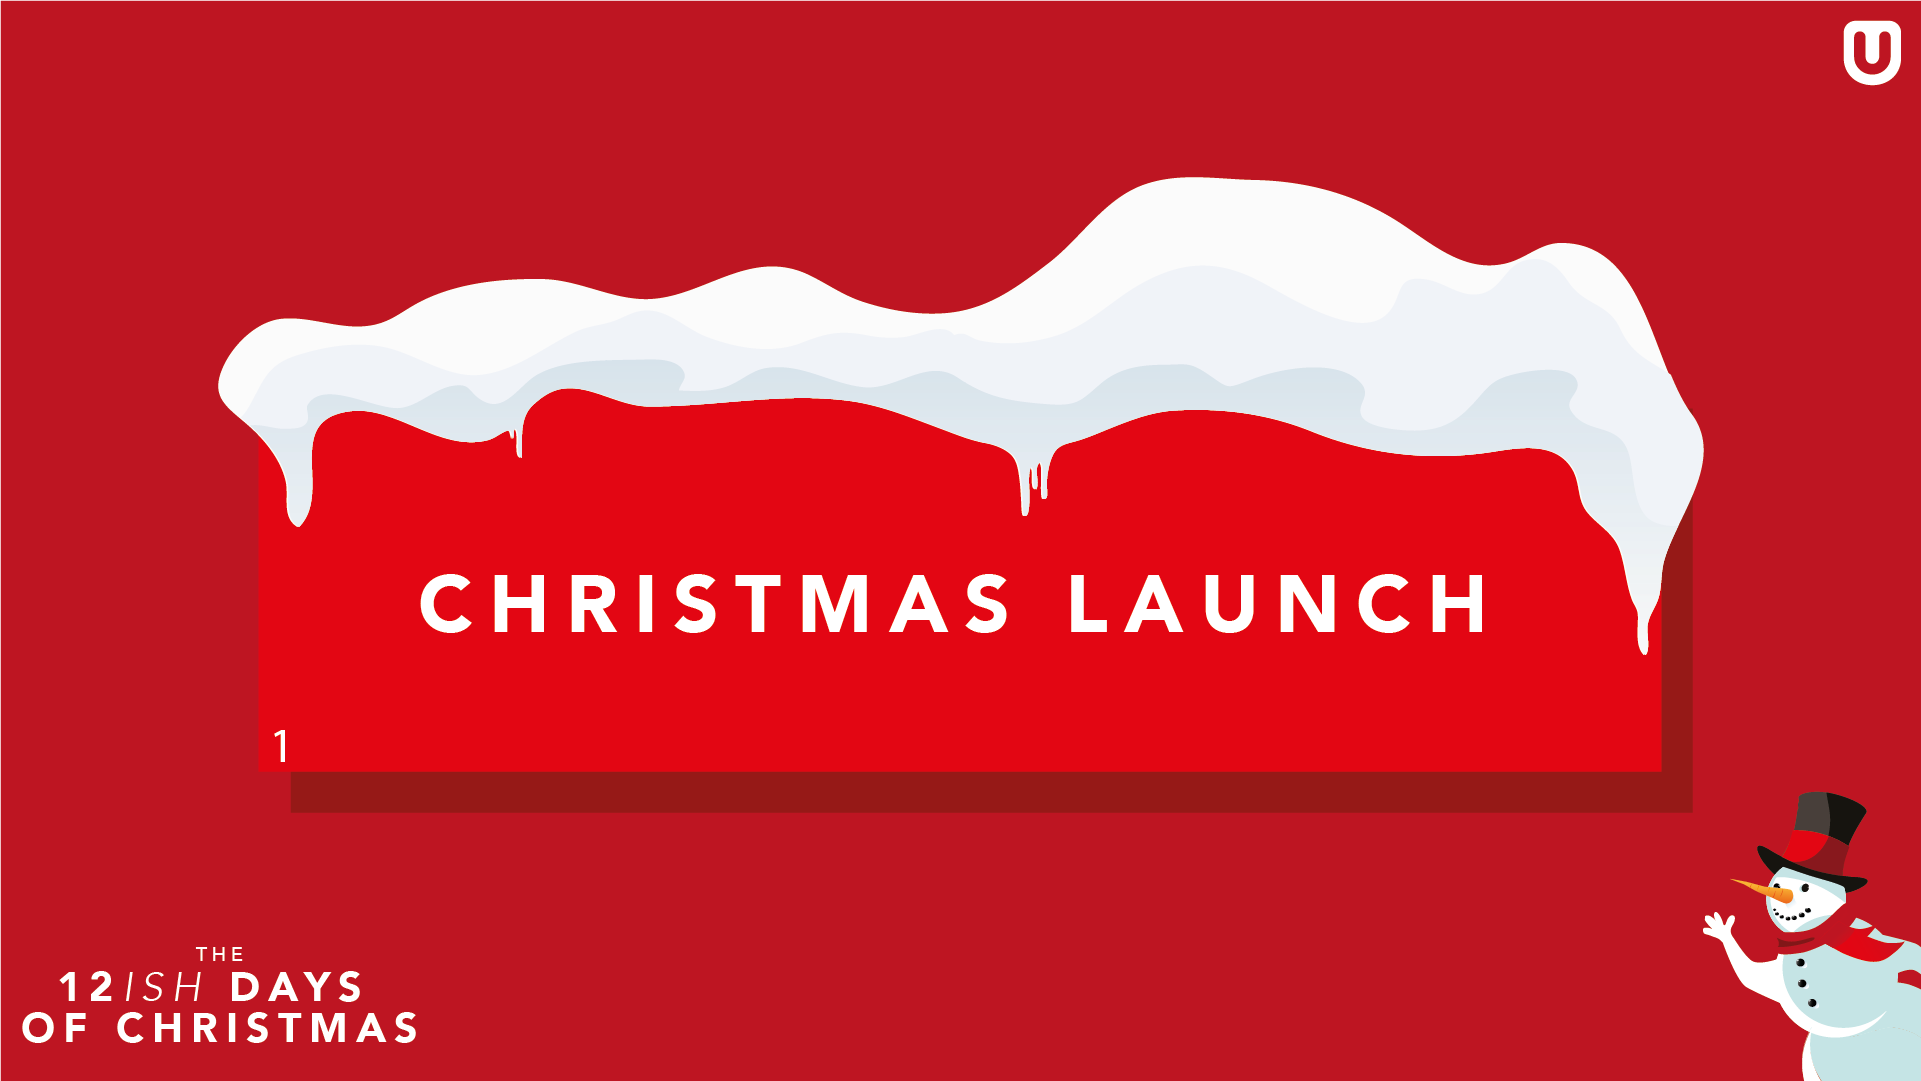 CHRISTMAS LAUNCH ∙ Christmas